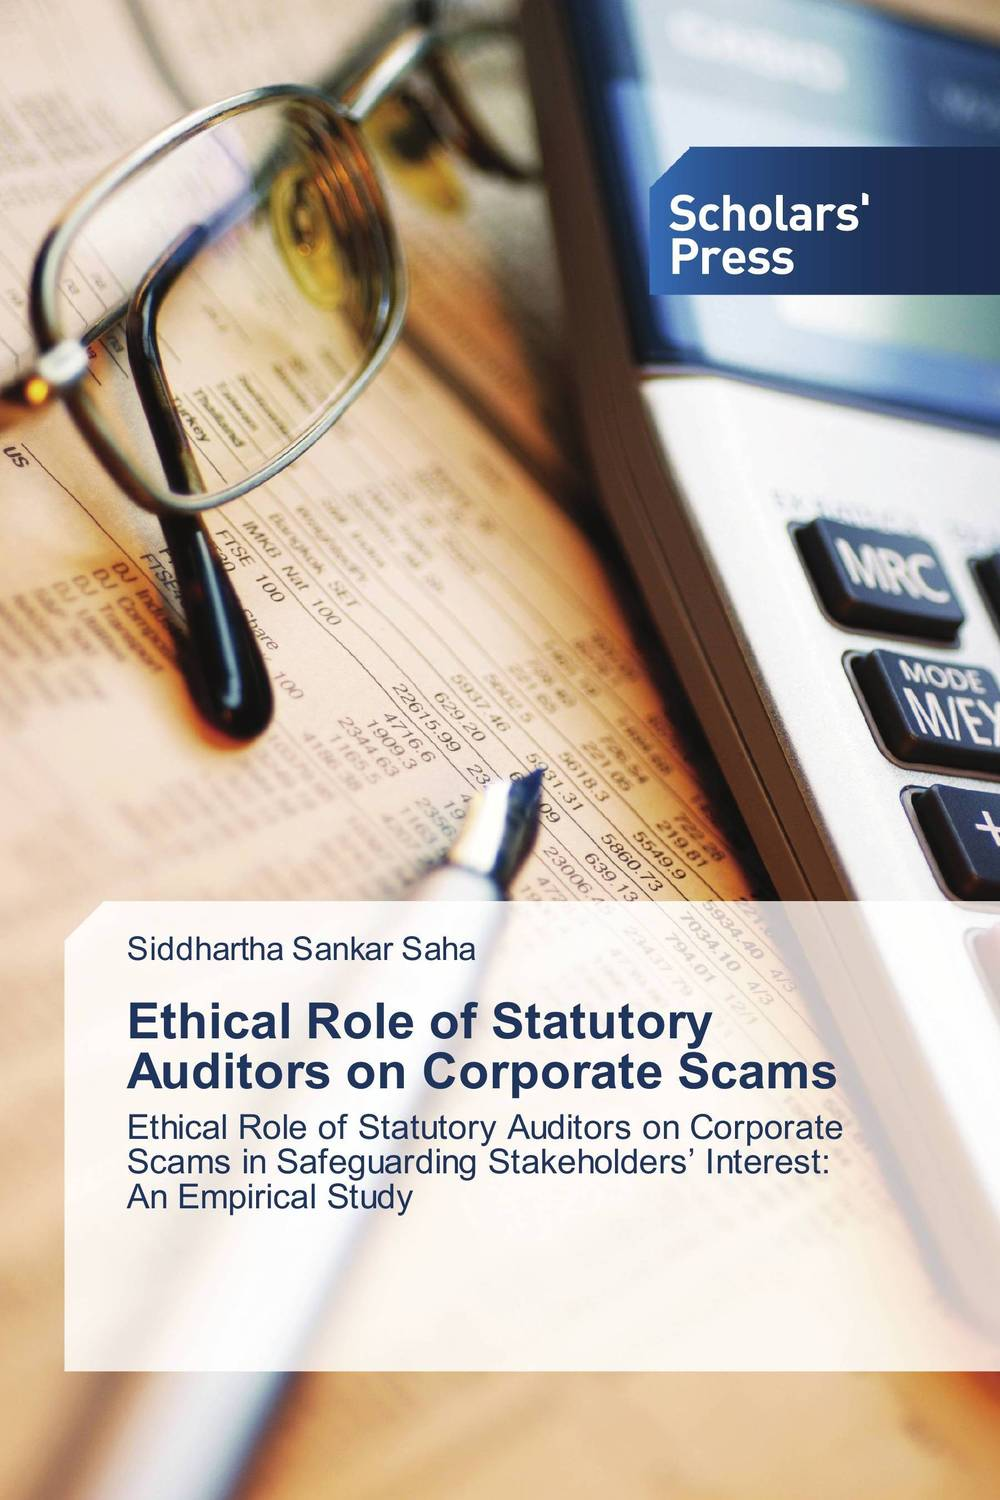 Ethical Role of Statutory Auditors on Corporate Scams dysfunctions in accounting and the role of corporate lobbying